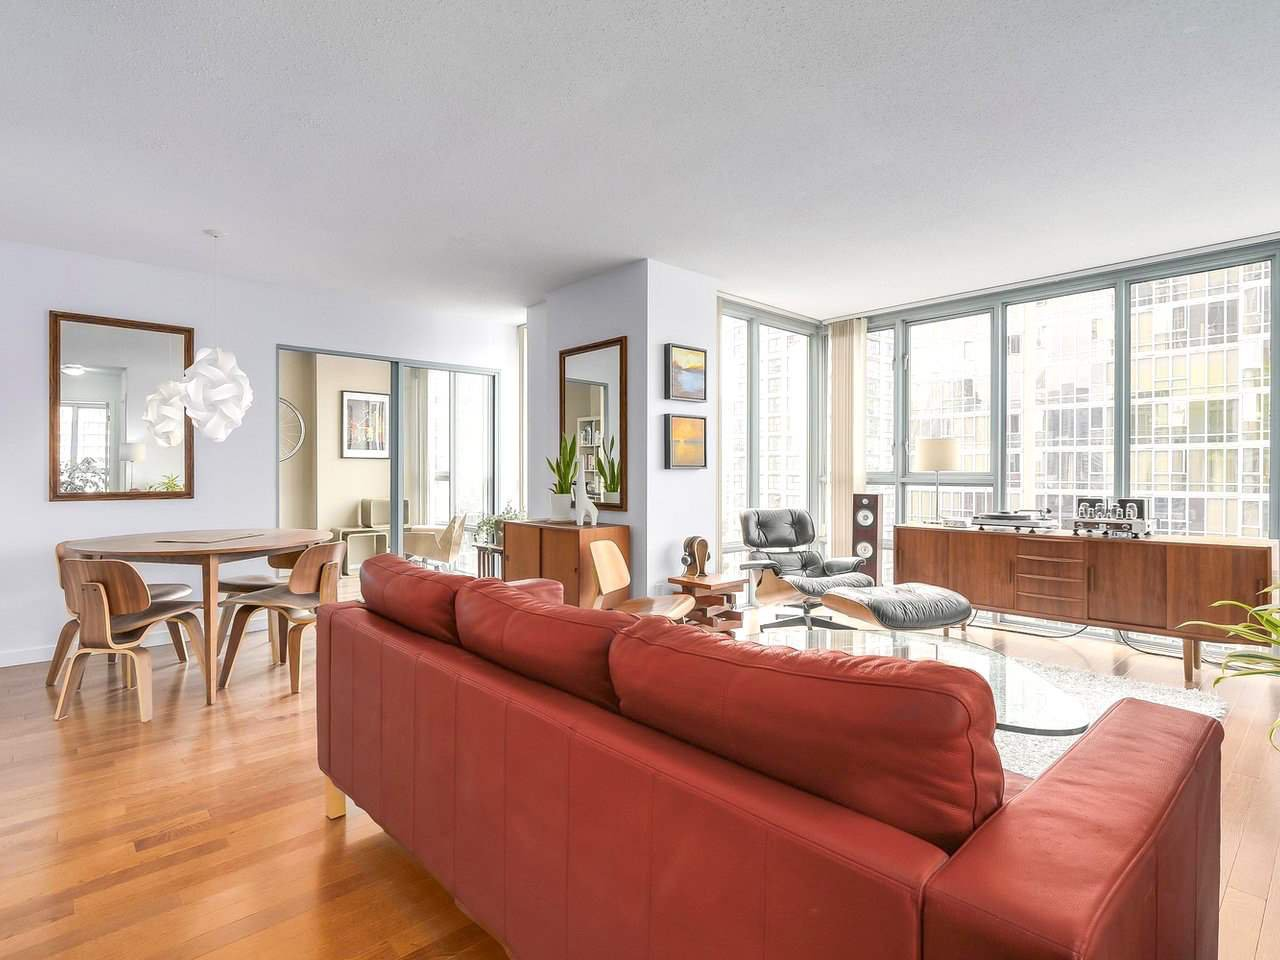 """Main Photo: 1203 930 CAMBIE Street in Vancouver: Yaletown Condo for sale in """"PACIFIC PLACE LANDMARK 2"""" (Vancouver West)  : MLS®# R2198711"""